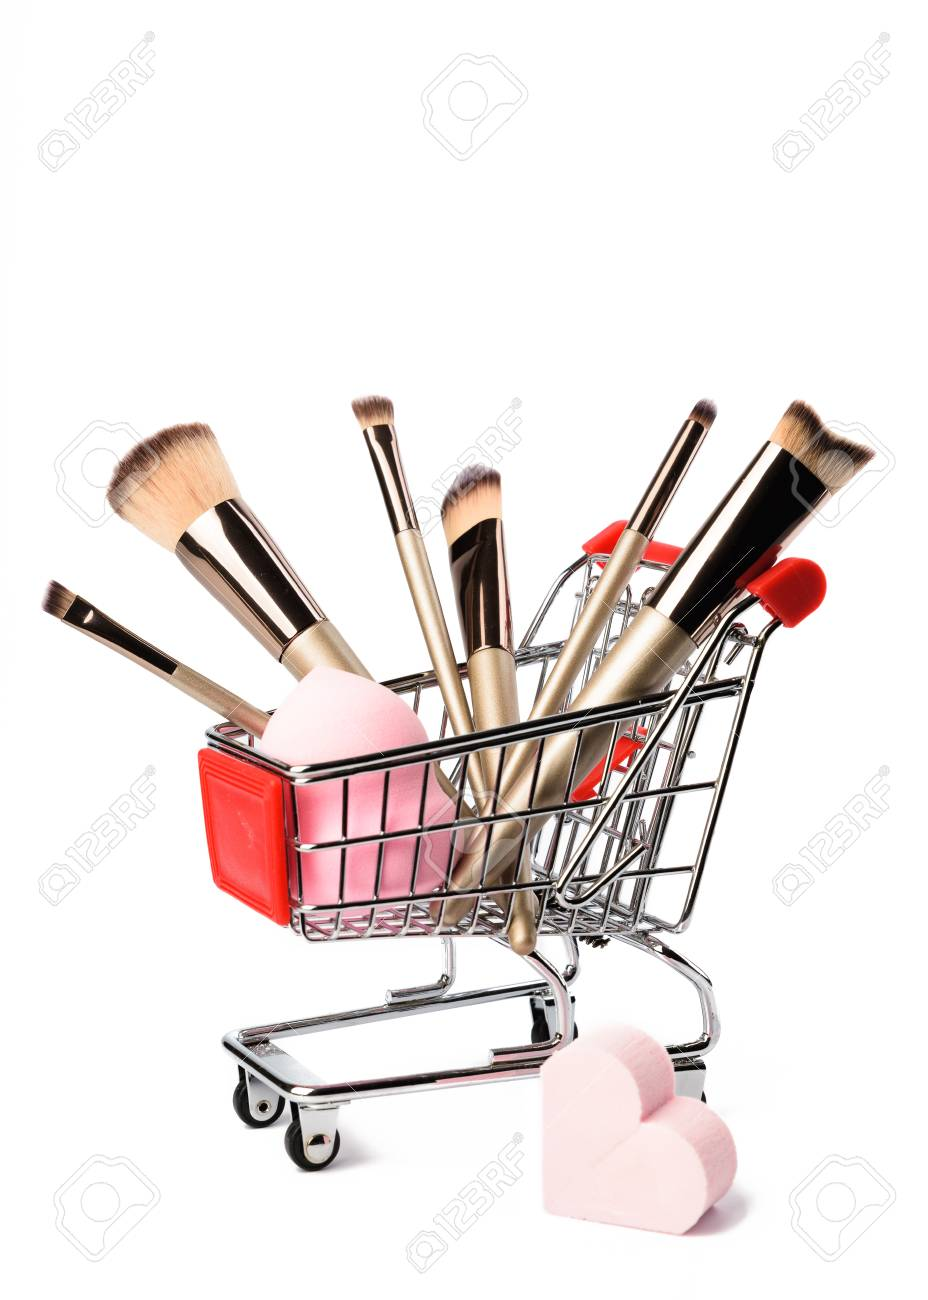 Makeup brushes isolated on white background  Cosmetic, beauty